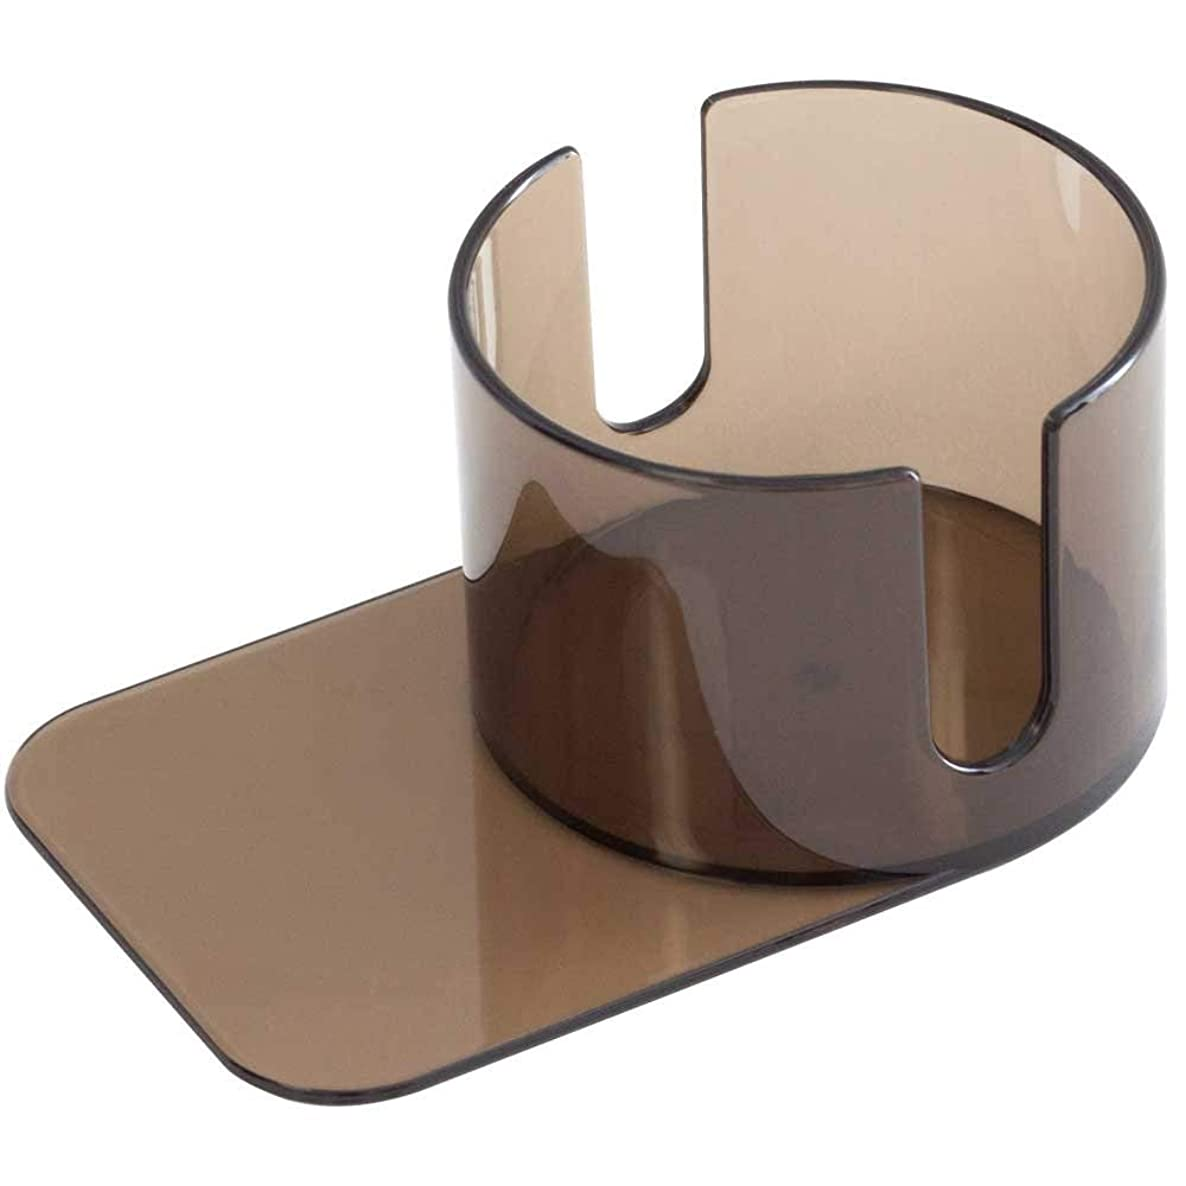 GSE Games & Sports Expert Poker Table Plastic Slide Under Cup Holder (4 Style Available)